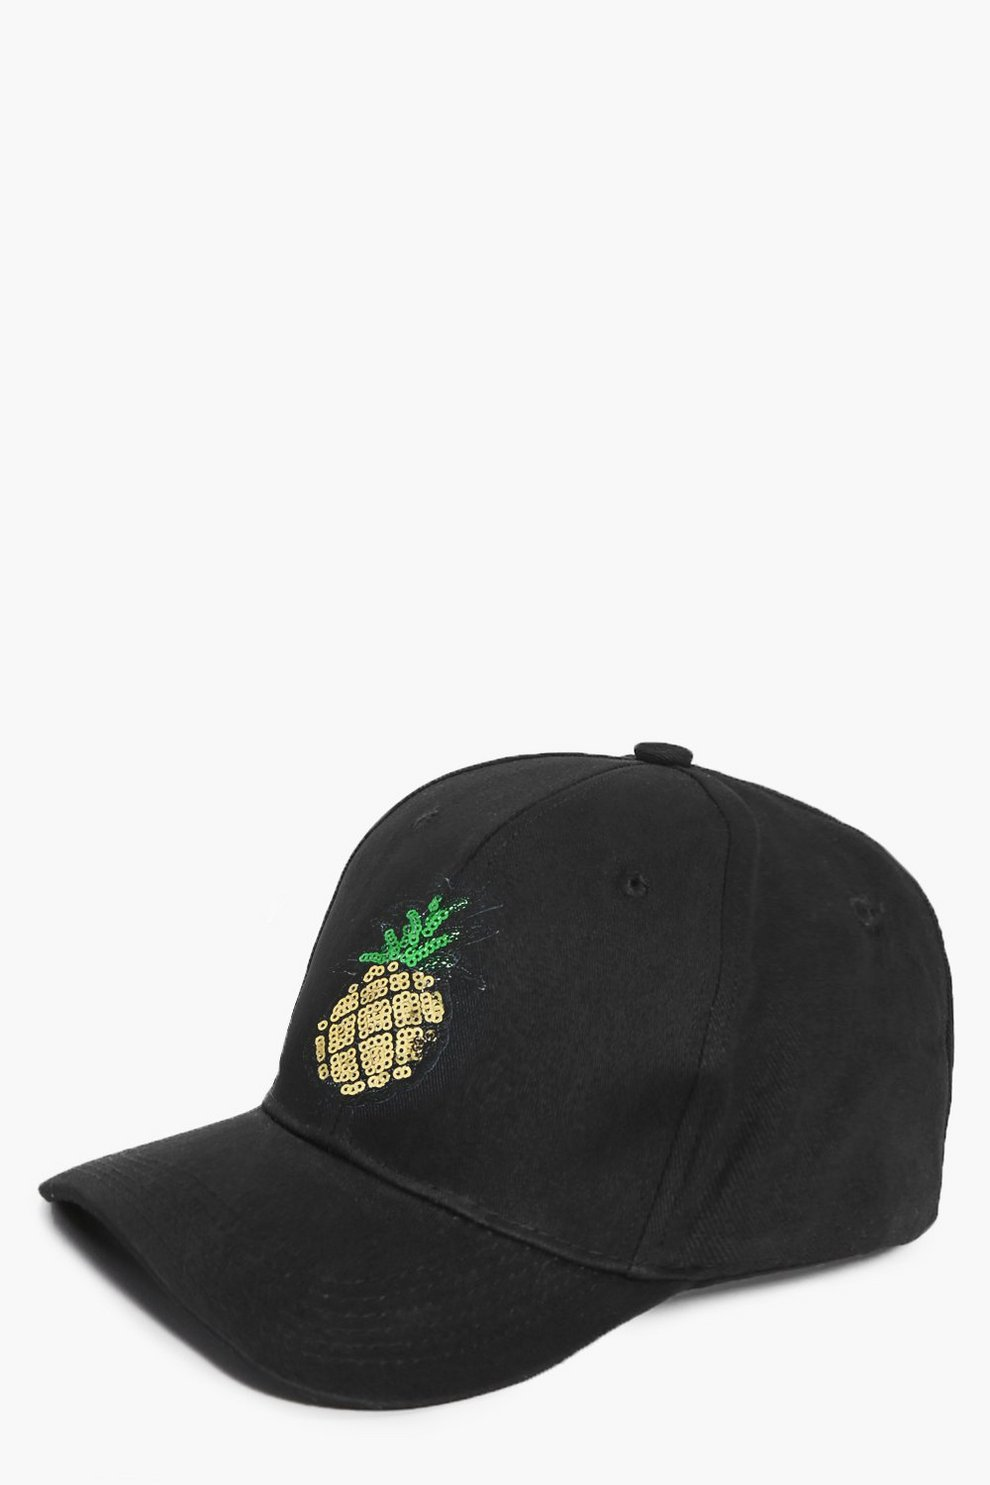 Madison Sequin Pineapple Baseball Cap  b90ea15a247a